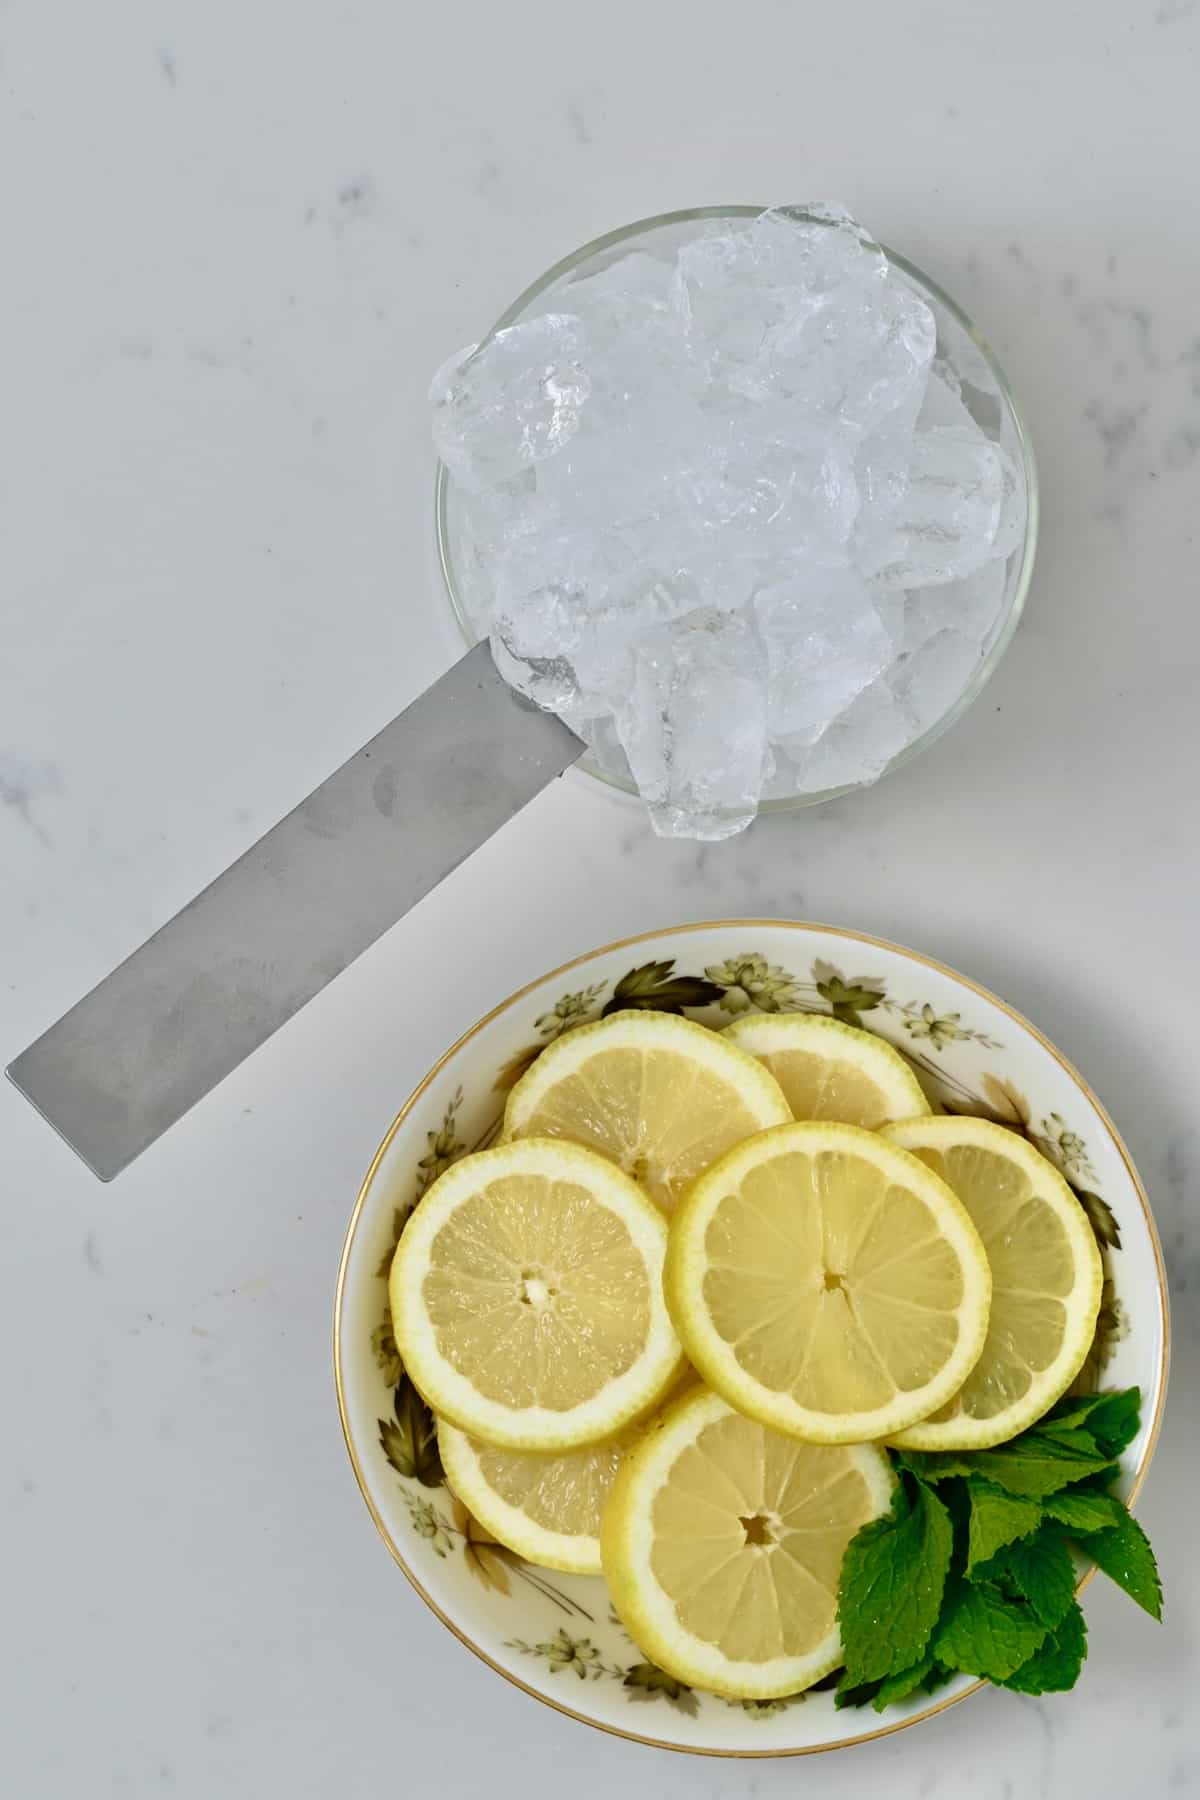 Ice lemon slices and mint leaves